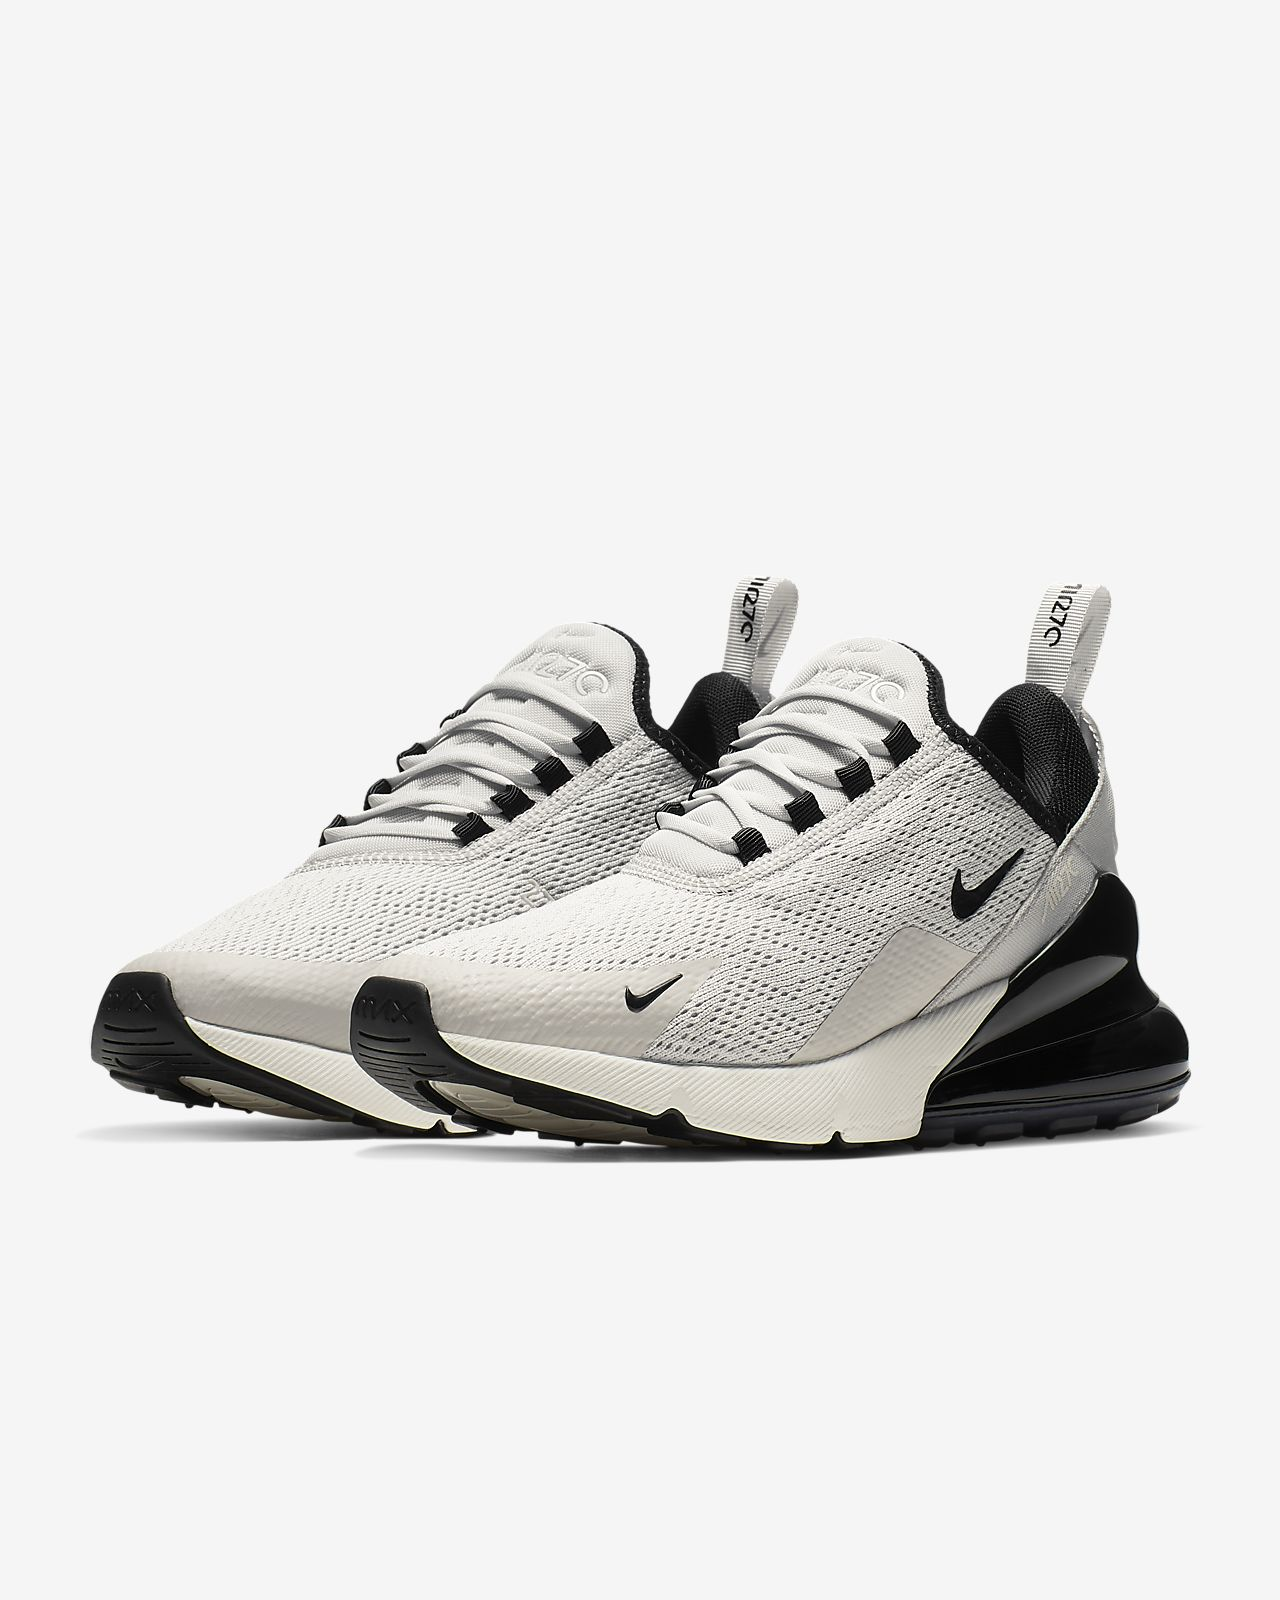 online store 2250f cd901 ... Nike Air Max 270 Damenschuh